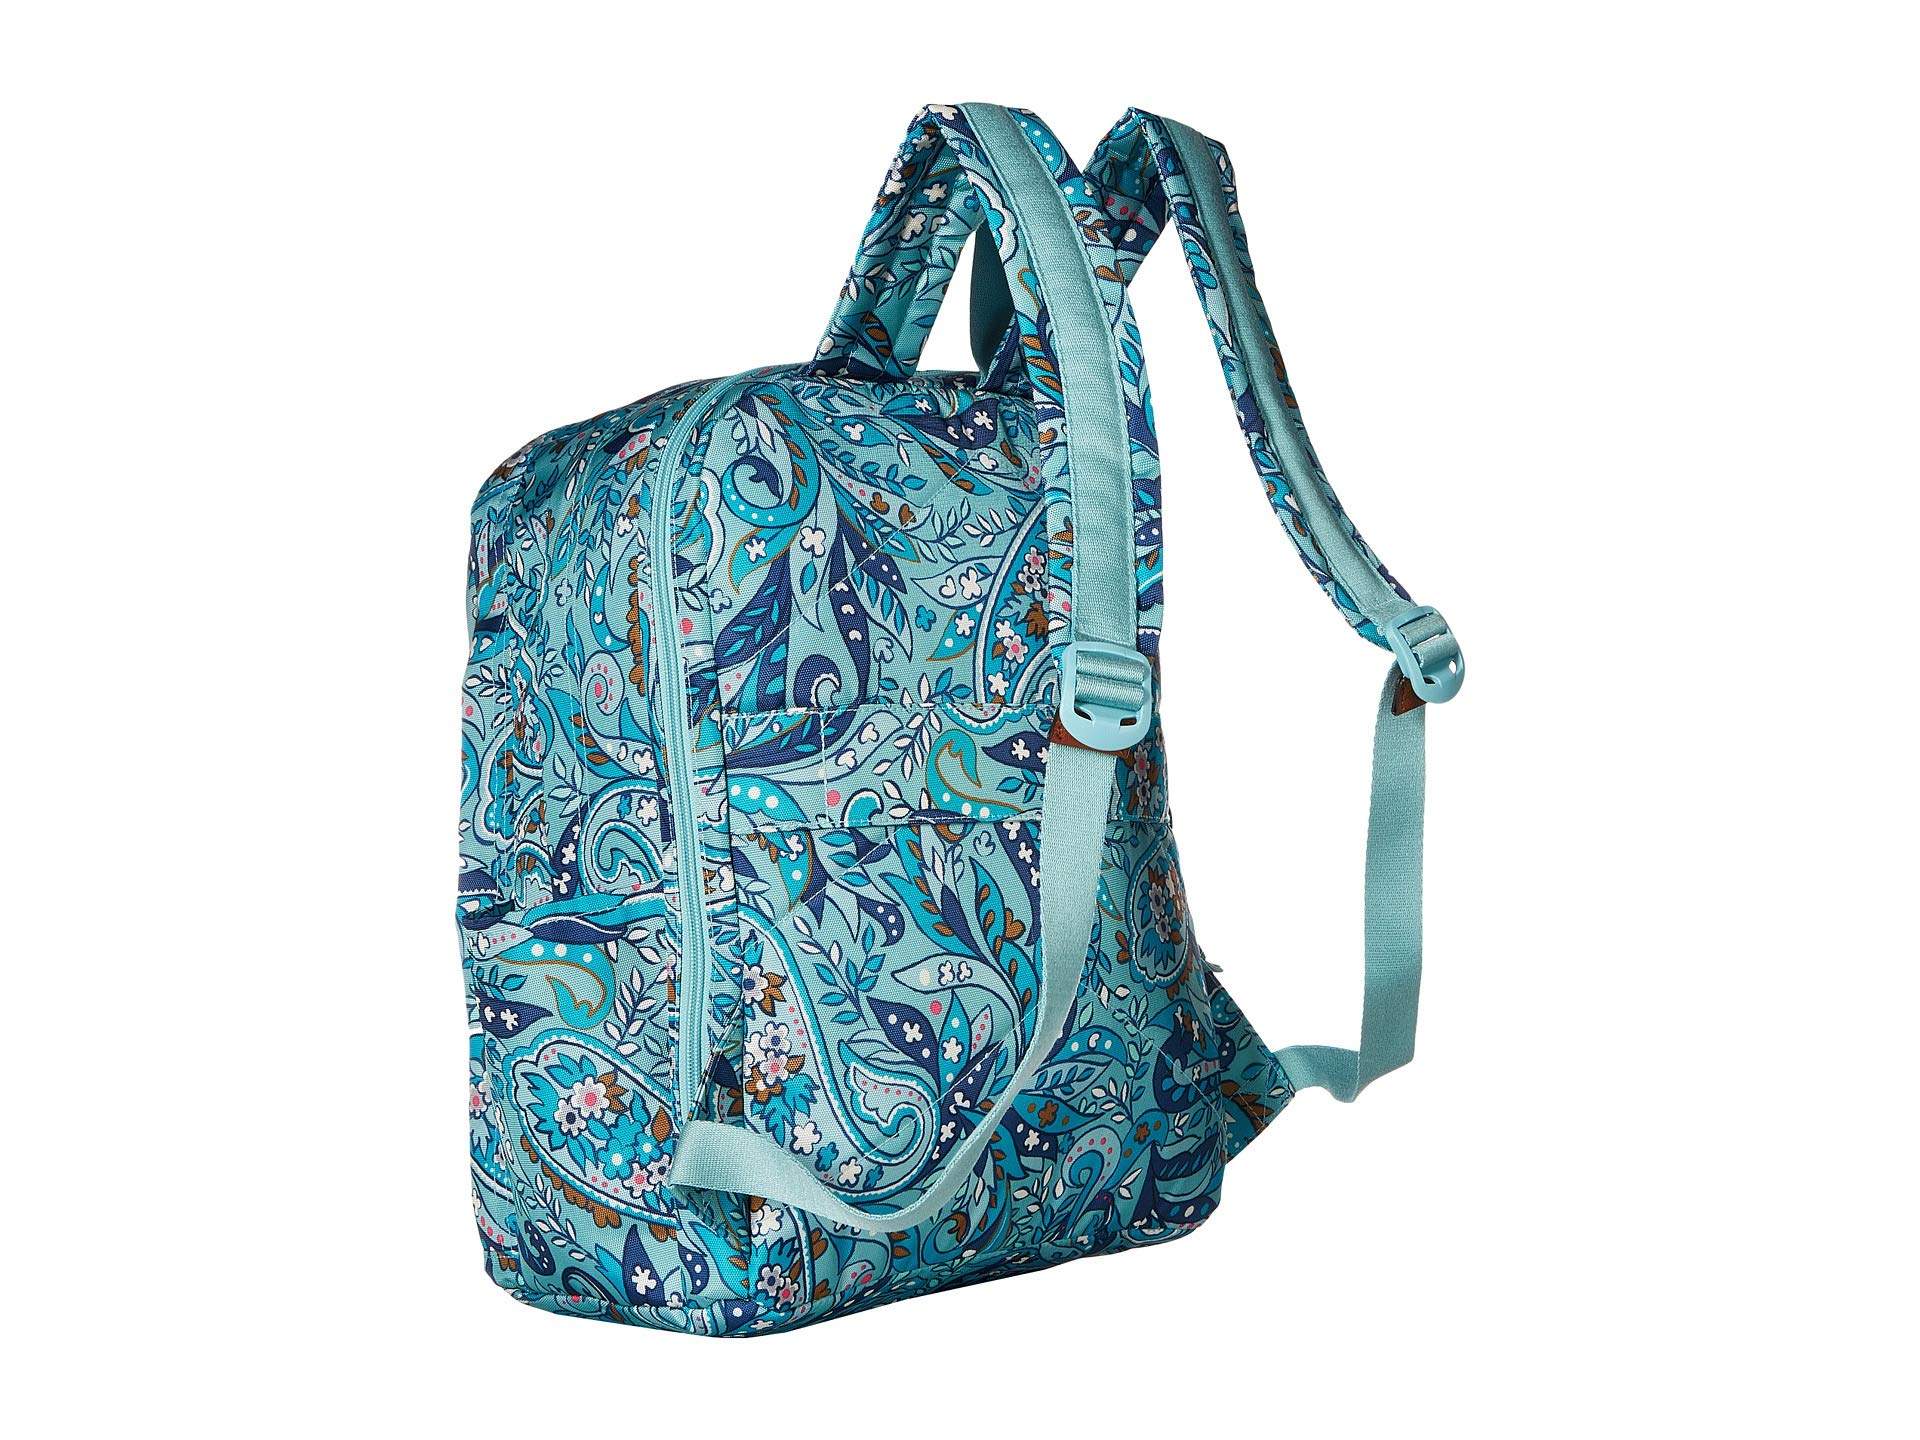 Daisy Lighten Bradley Up Paisley Vera Backpack Grand wHX6w5Z